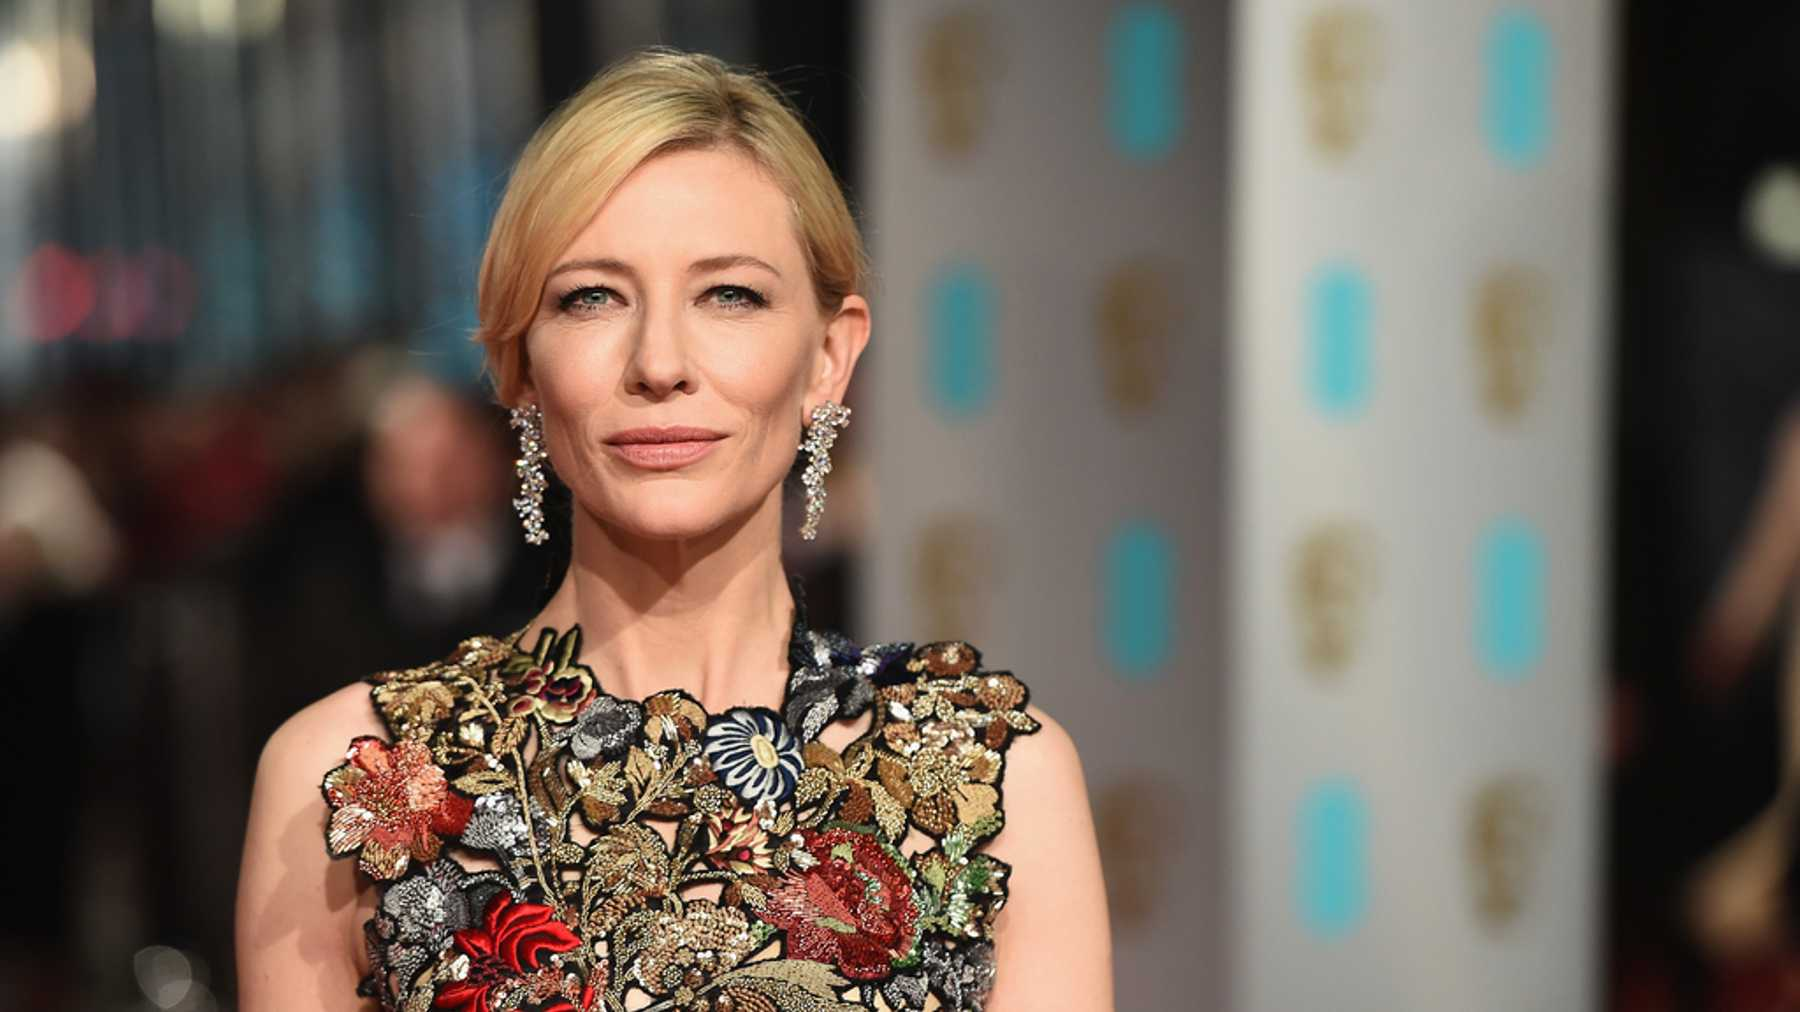 Cate Blanchett to join Sandra Bullock in all-female Ocean's Eleven